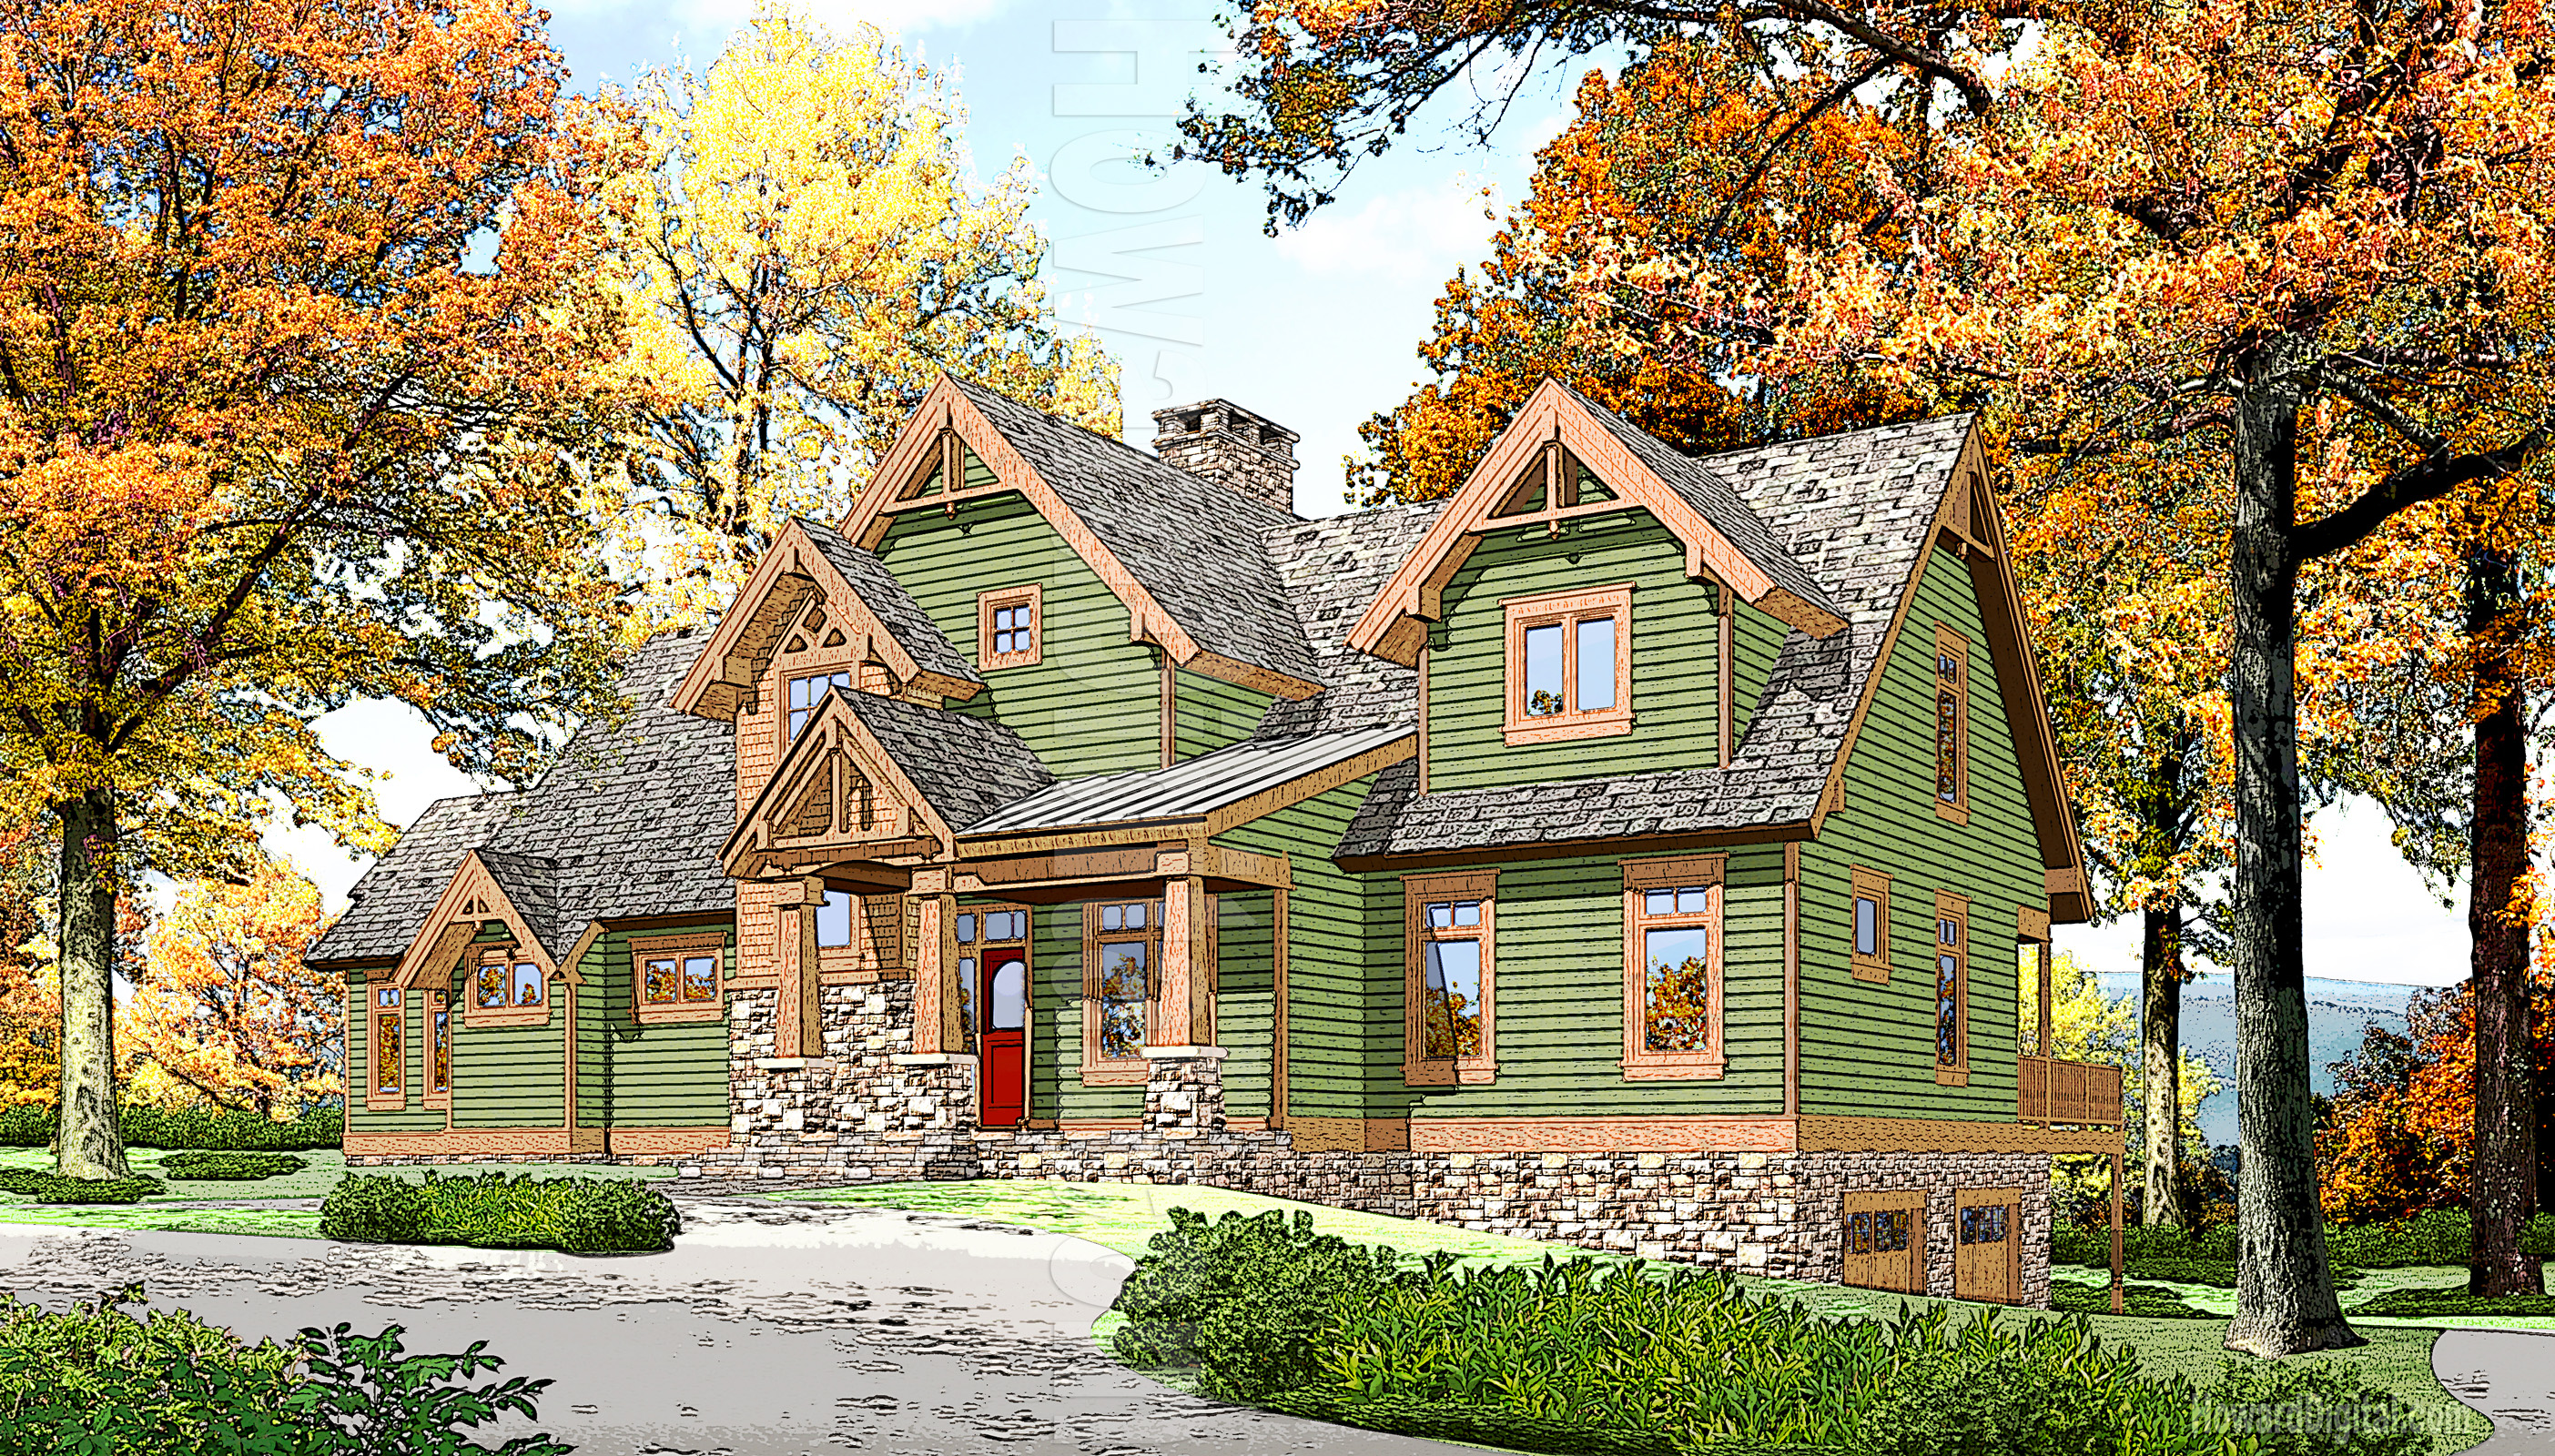 2807x1600 Watercolor Hand Painted Rendering Roaring Rivers House Painting